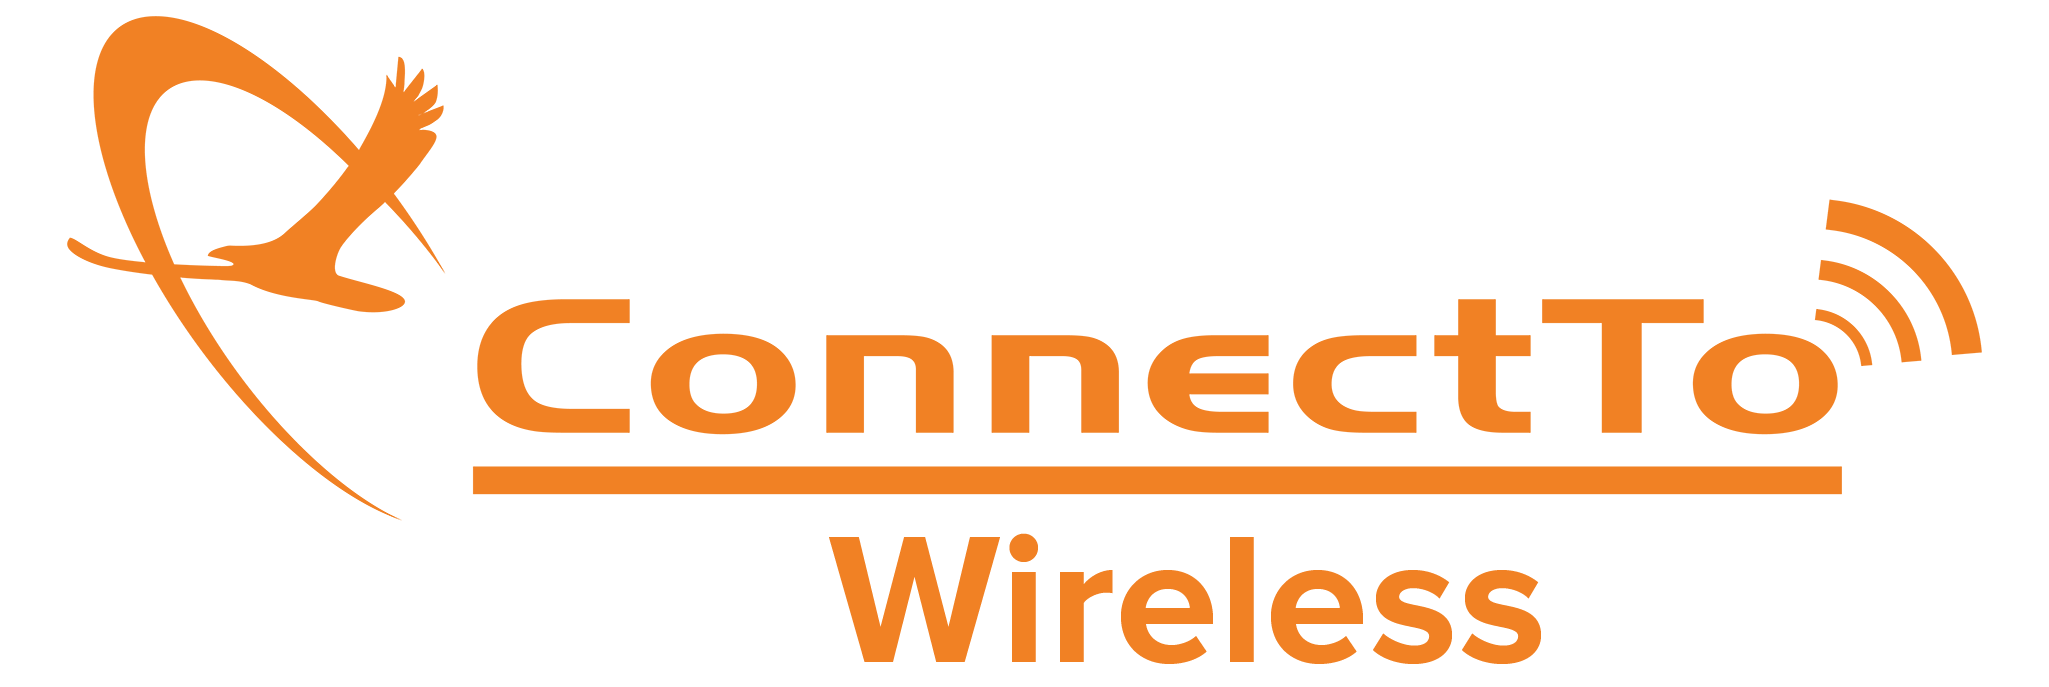 ConnectTo Wireless